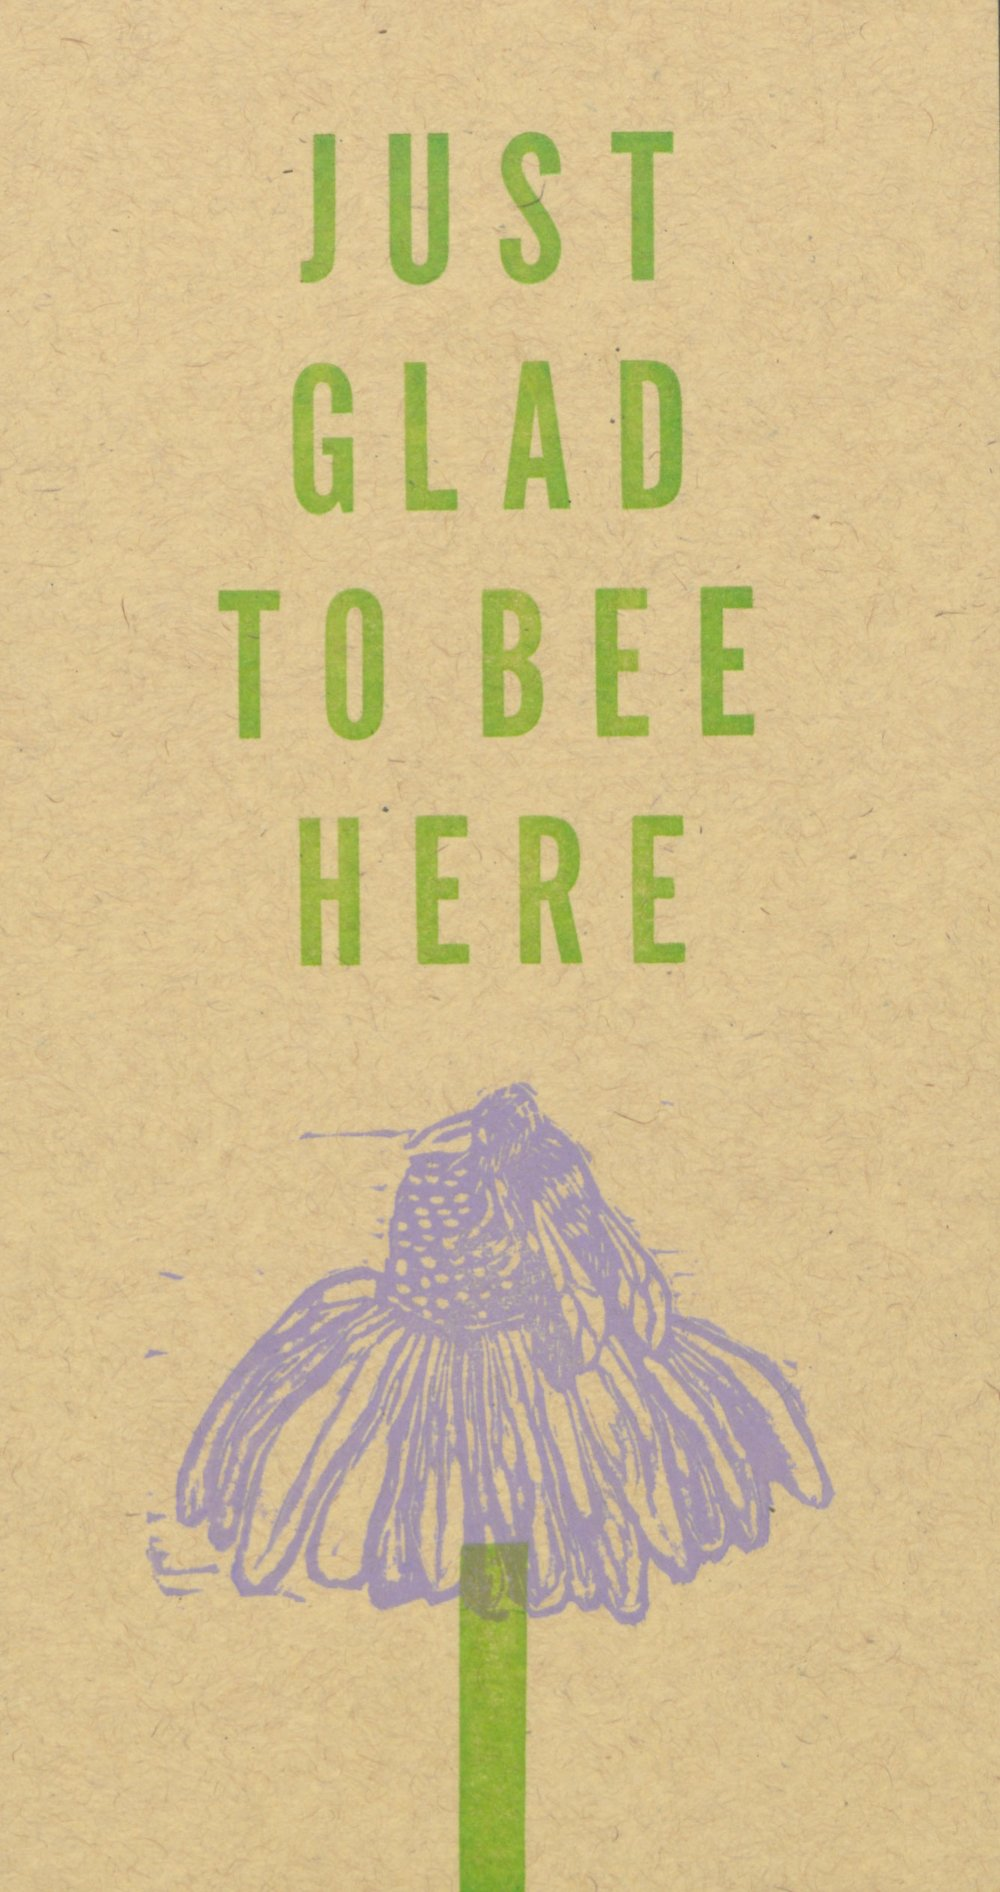 Glad to Bee Here